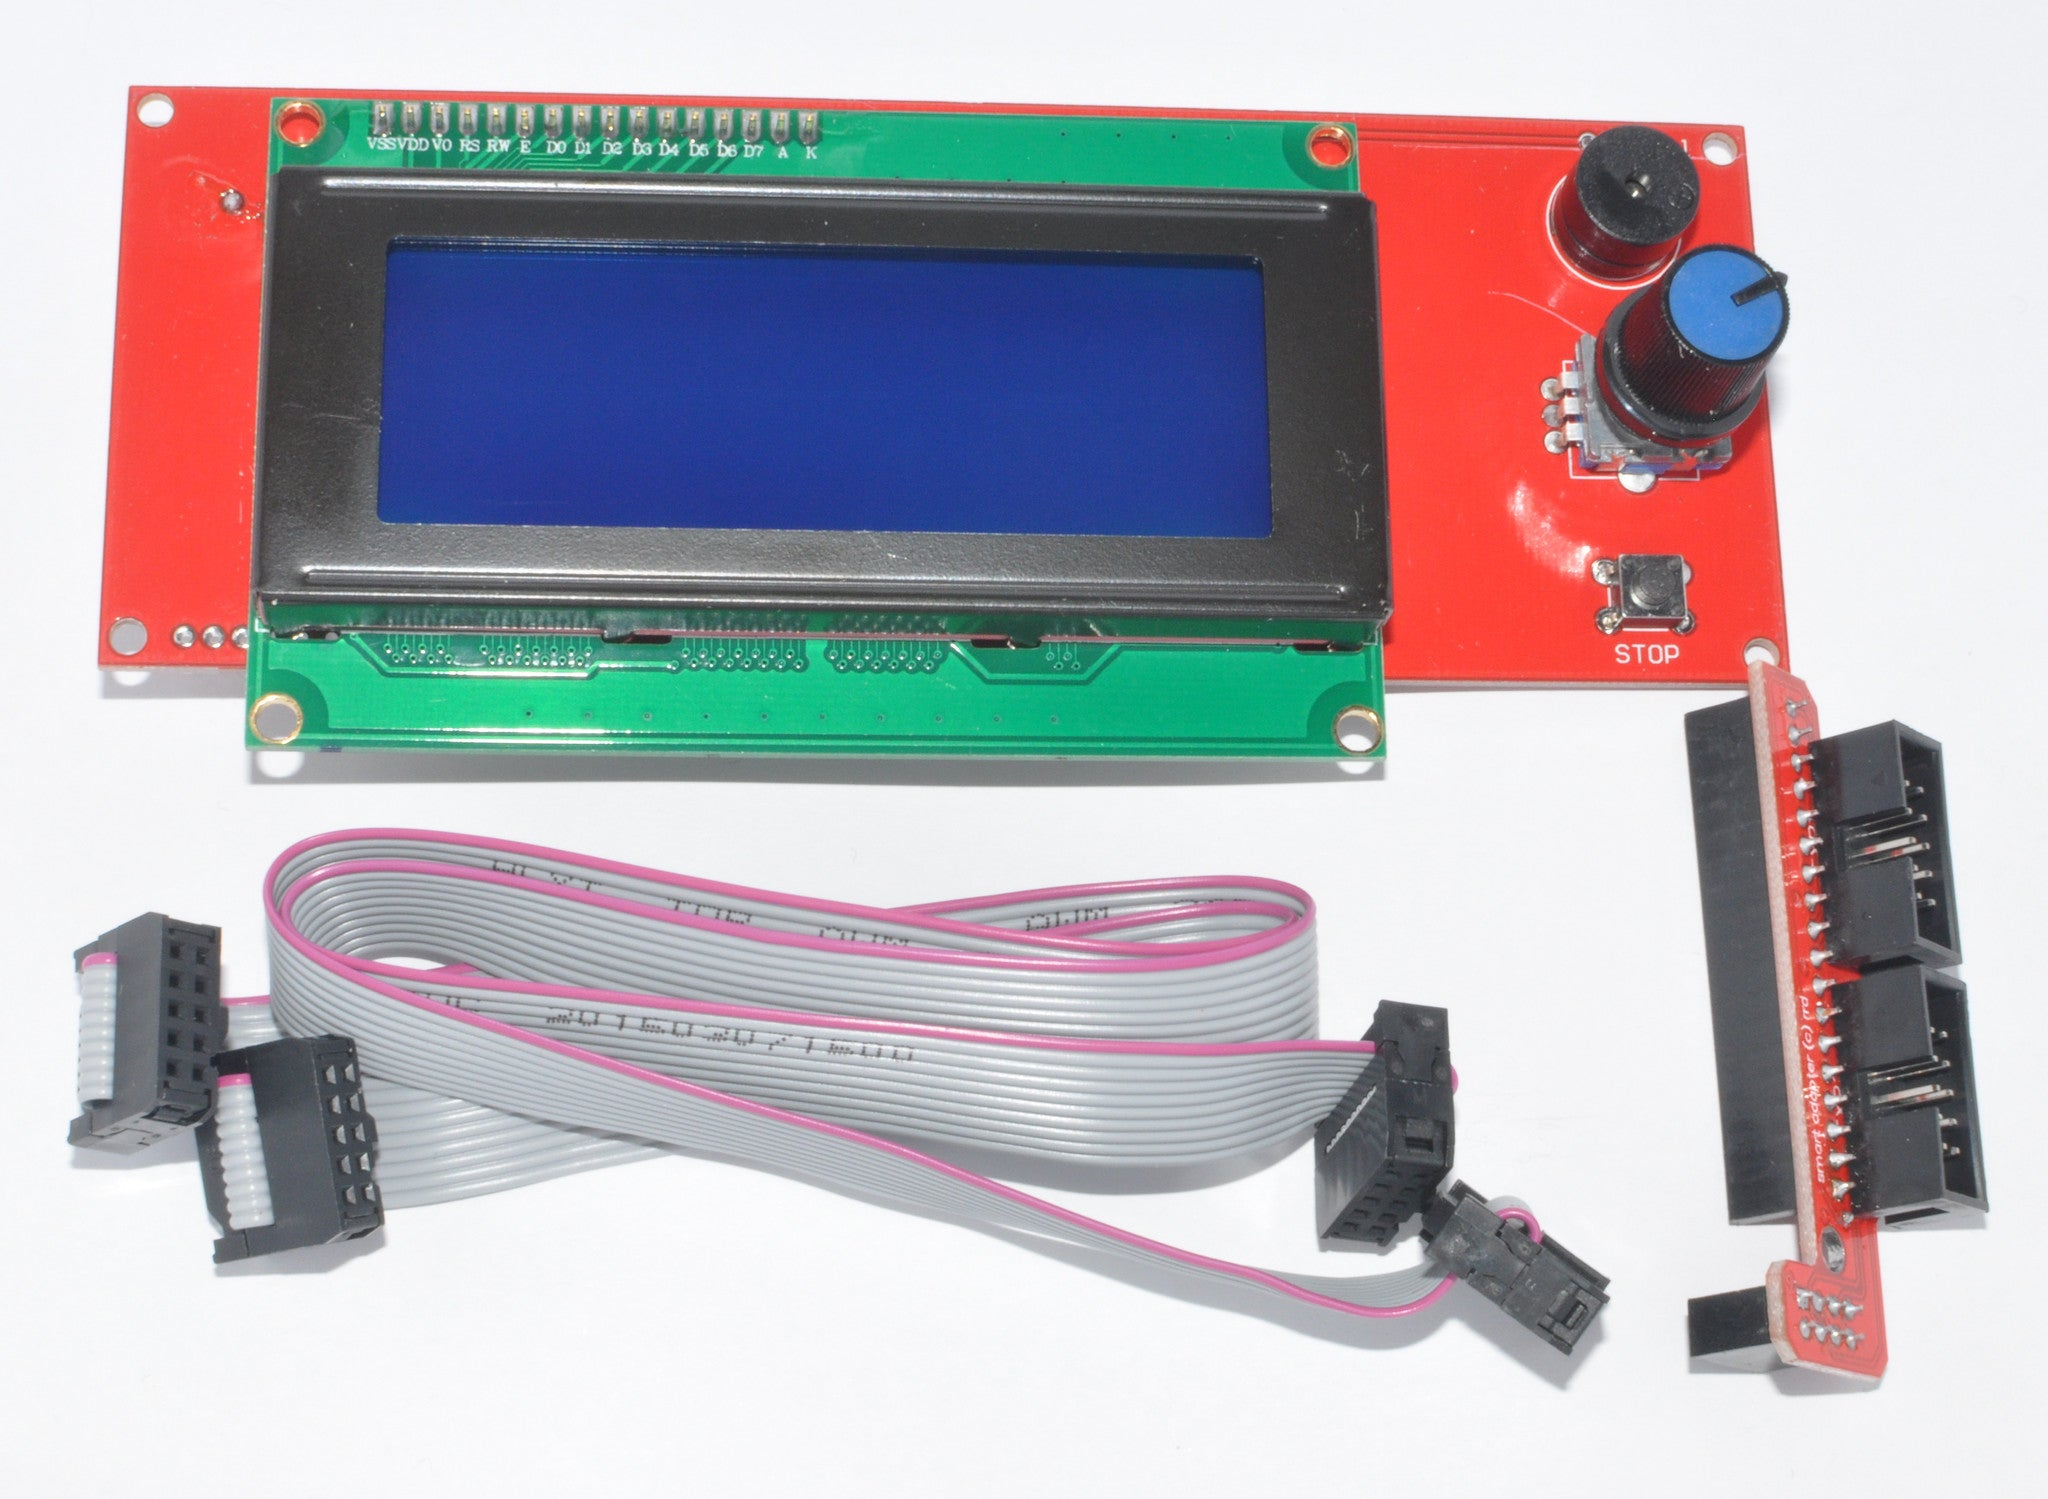 Standalone printer controller for RAMPS (LCD+Encoder+SDCard Reader)